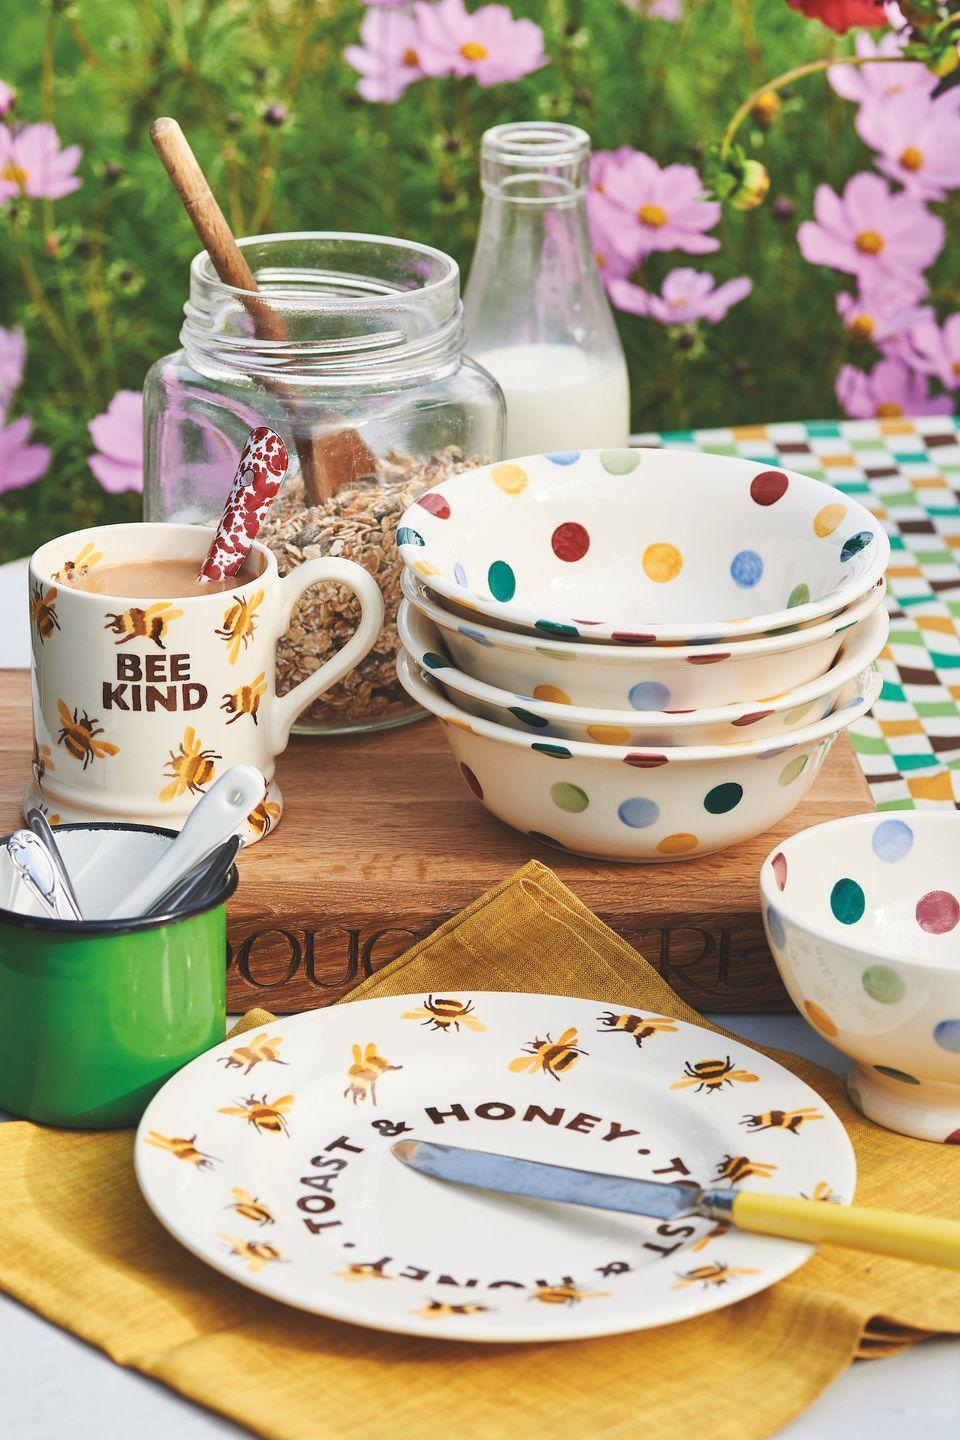 "<p>Whether your go-to breakfast is toast or cereal, Emma Bridgewater's new collection has everything you could possibly need. You'll find bowls, plates, butter knives, mugs and much more. </p><p><a class=""link rapid-noclick-resp"" href=""https://go.redirectingat.com?id=127X1599956&url=https%3A%2F%2Fwww.emmabridgewater.co.uk%2Fcollections%2Fnew&sref=https%3A%2F%2Fwww.housebeautiful.com%2Fuk%2Flifestyle%2Fshopping%2Fg35264783%2Femma-bridgewater-spring%2F"" rel=""nofollow noopener"" target=""_blank"" data-ylk=""slk:BUY NOW"">BUY NOW</a></p>"